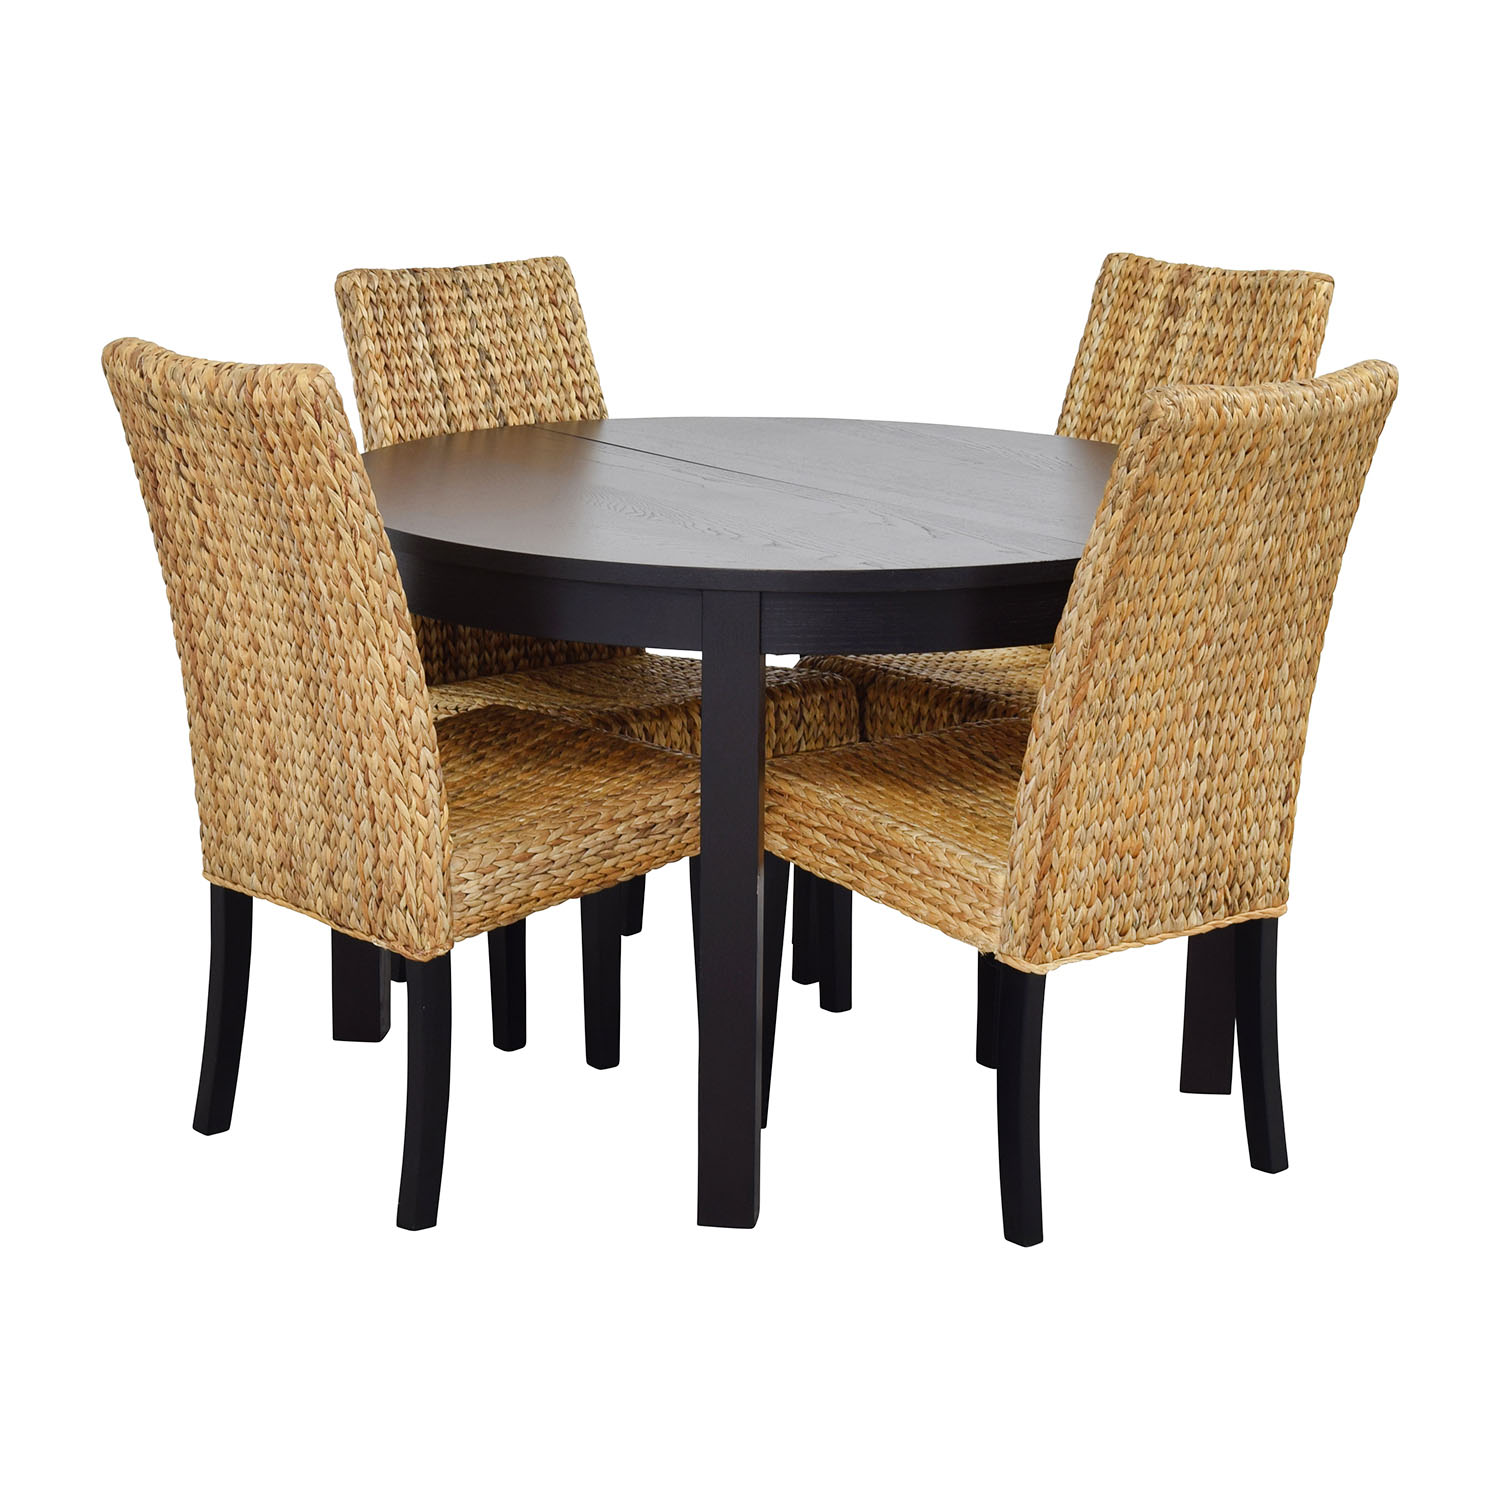 chair for dining table rooms to go chairs 66 off macy 39s and ikea round black set with